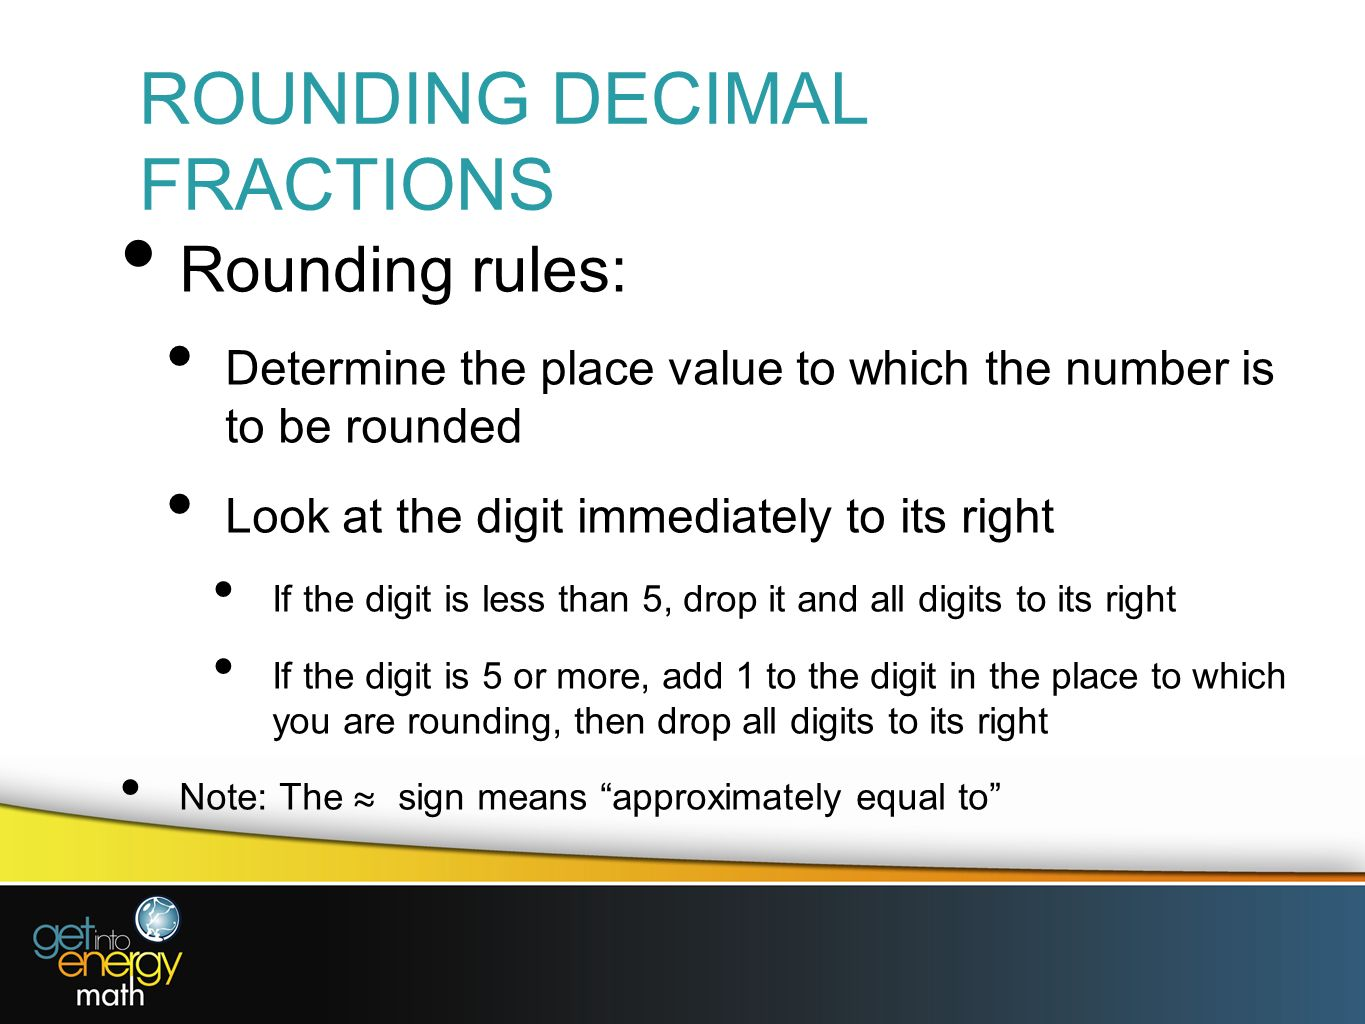 Presentation 6 decimal fractions ppt video online download 5 rounding decimal fractions biocorpaavc